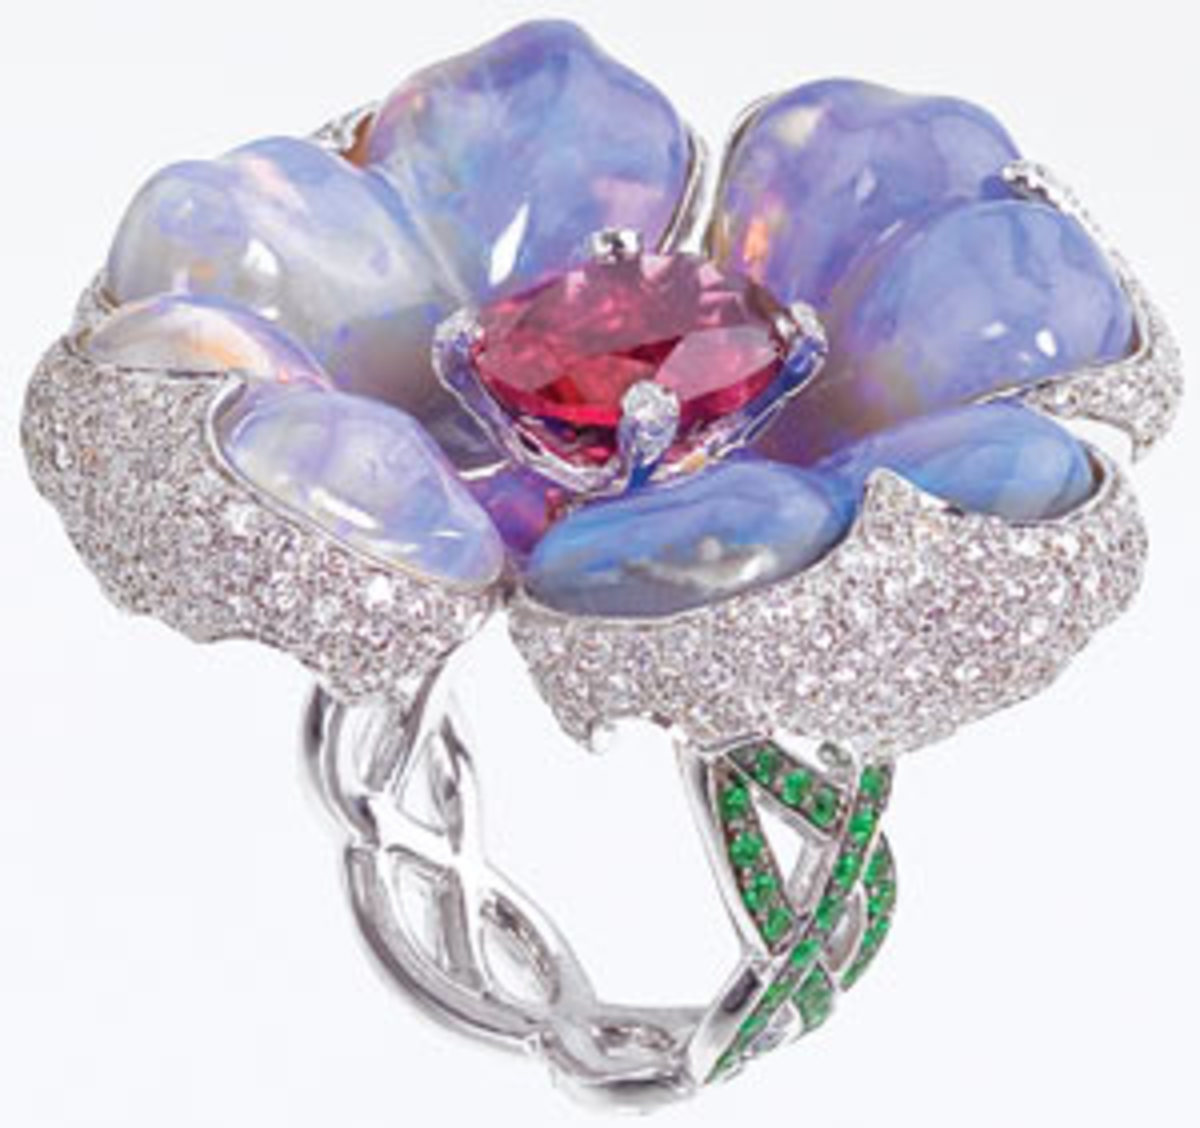 Carved opal and gemstone ring by Katherine Jetter